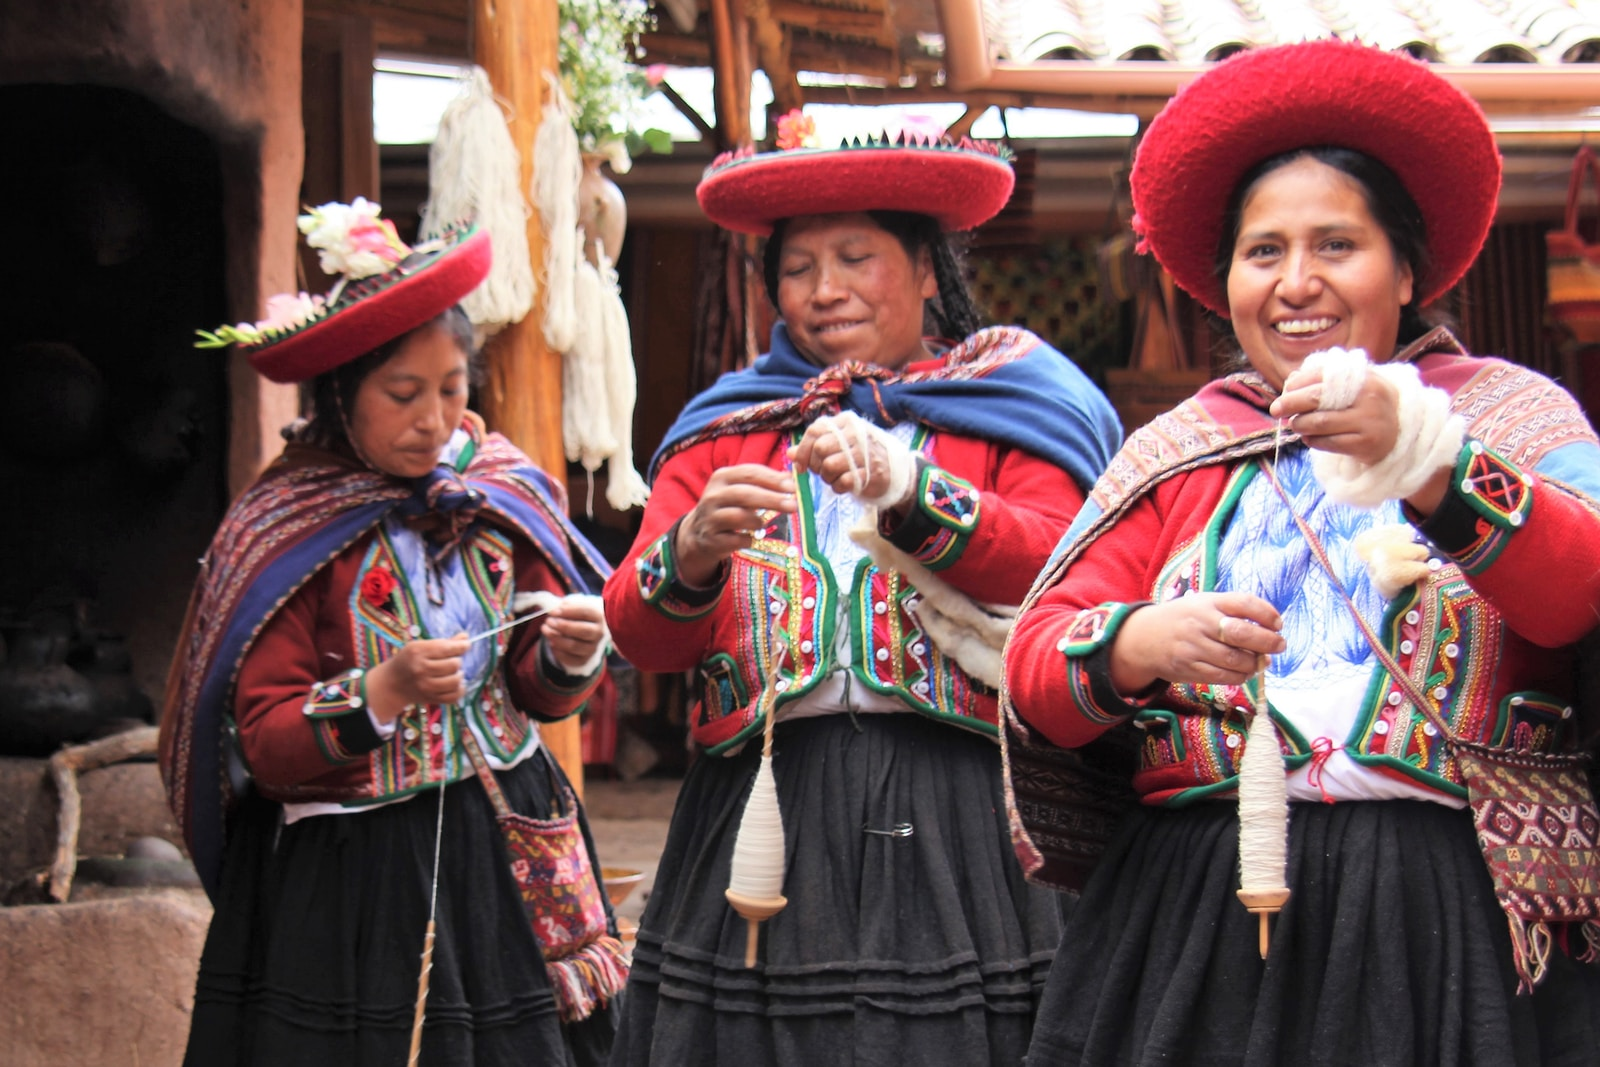 woman in Bolivia in traditional clothing